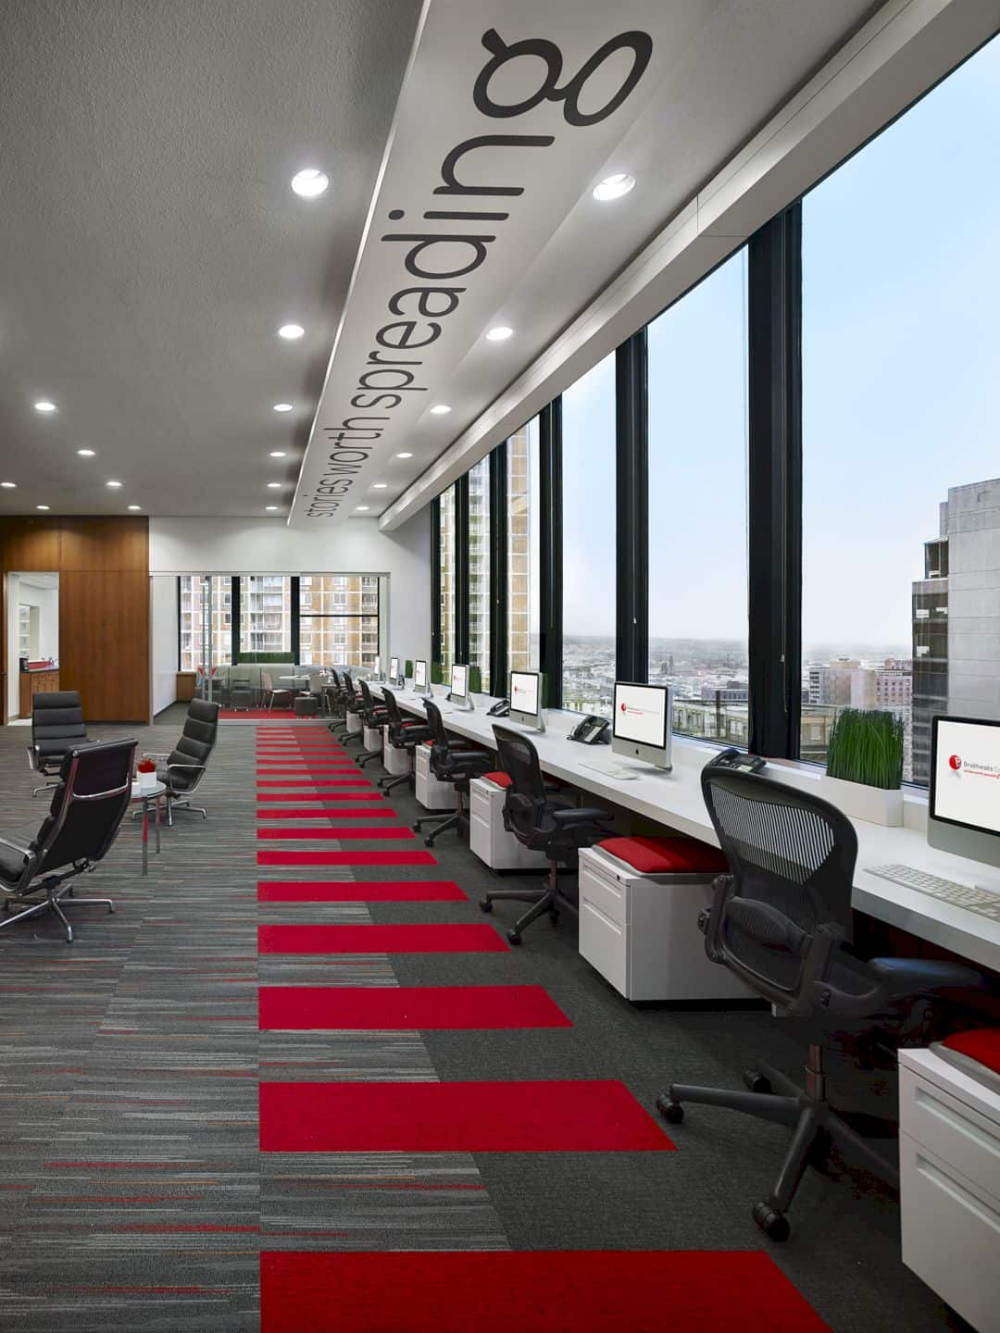 Office Interior A Contemporary Modern Workspace Of The Design Studio In 2020 Commercial Office Design Office Space Design Corporate Office Design